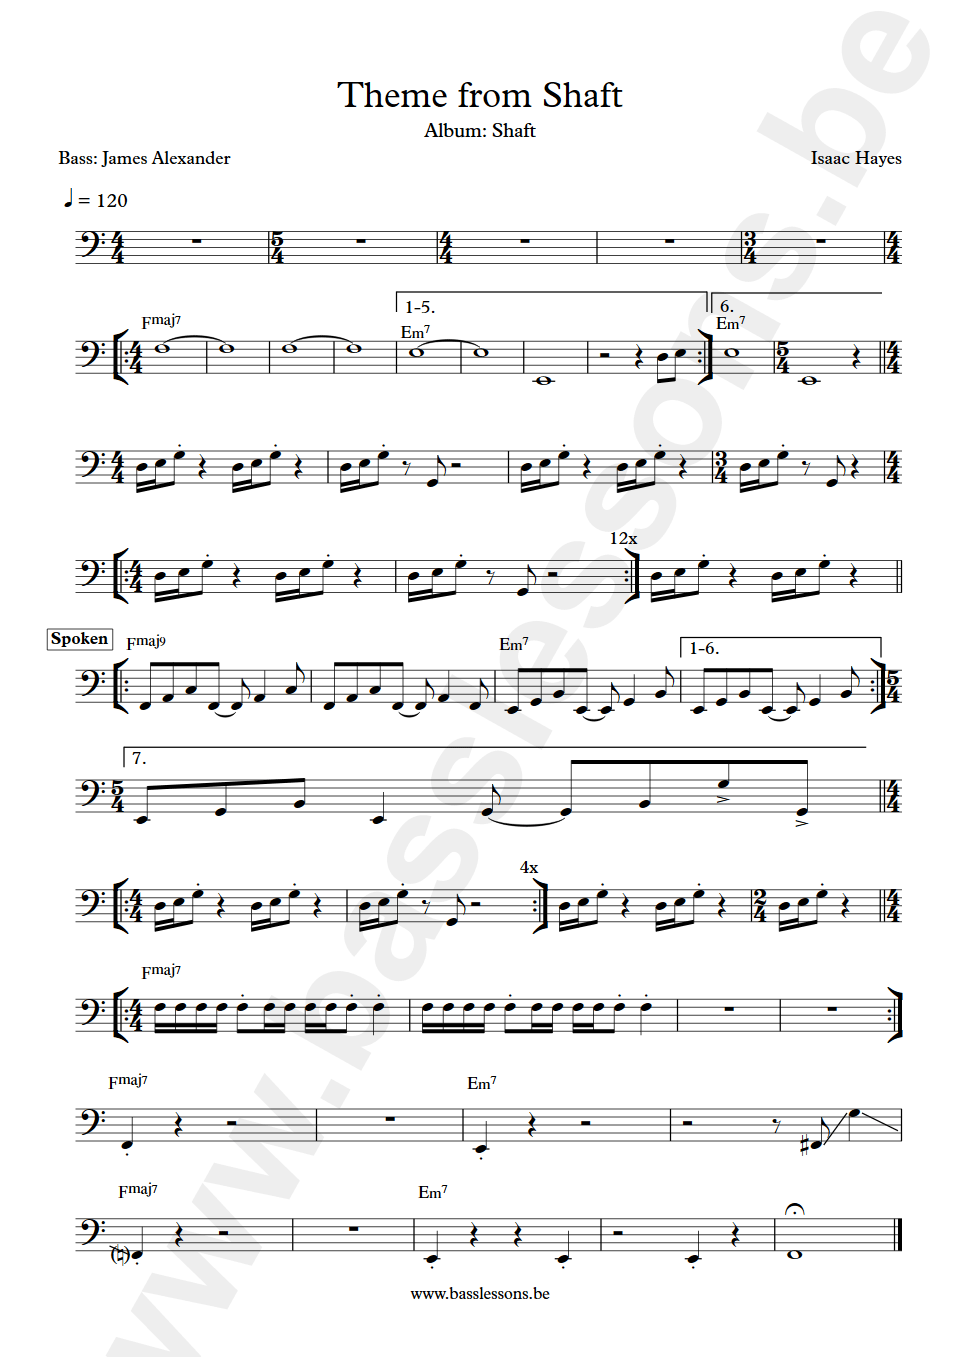 Theme from shaft bass transcription